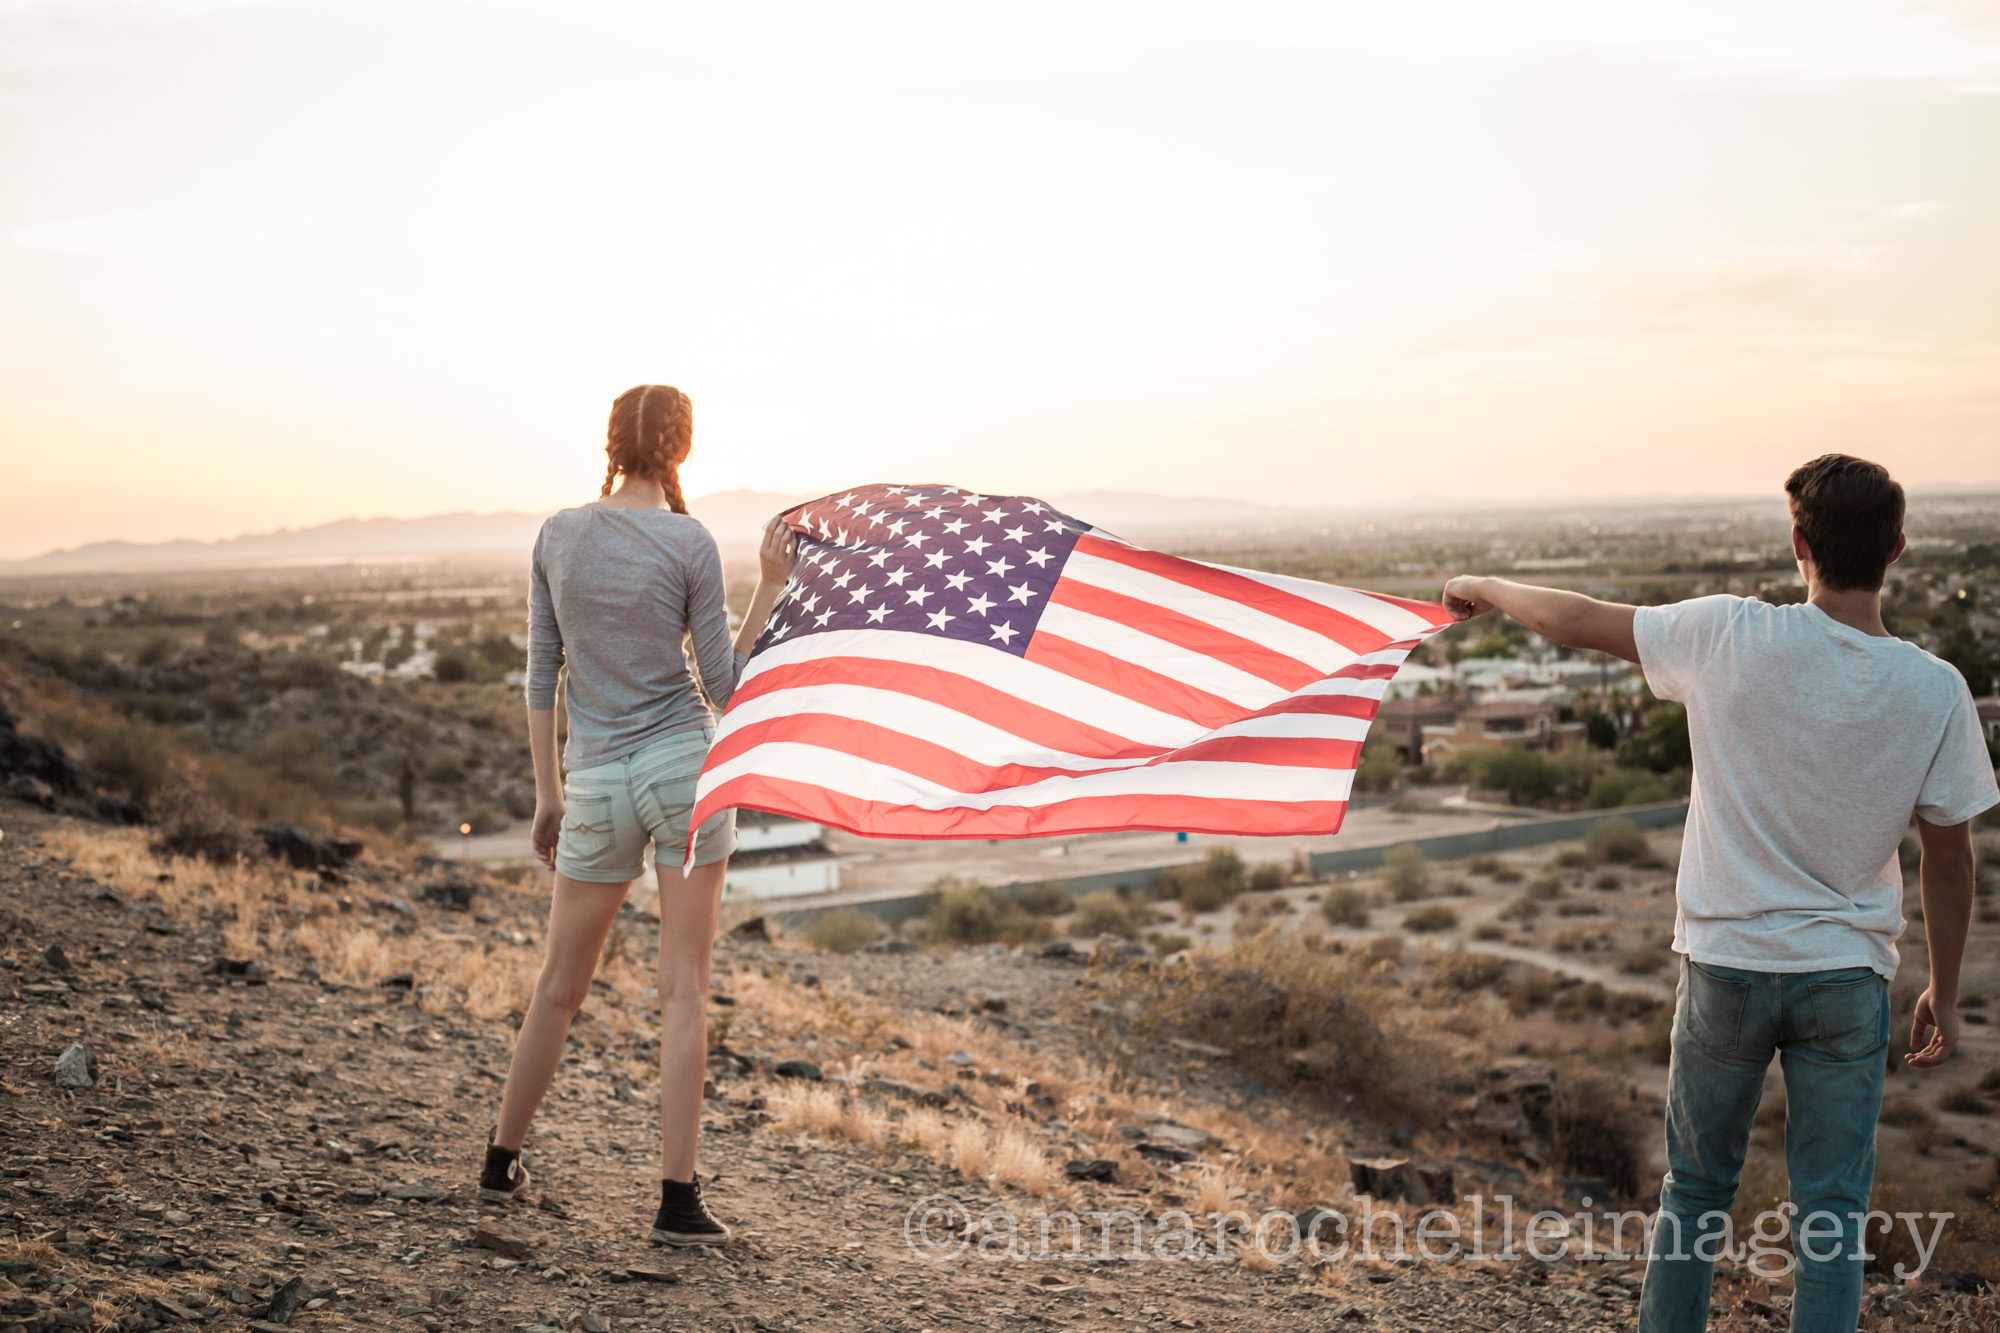 blog-south moutain-pair portraits-anna rochelle imagery-4.jpg